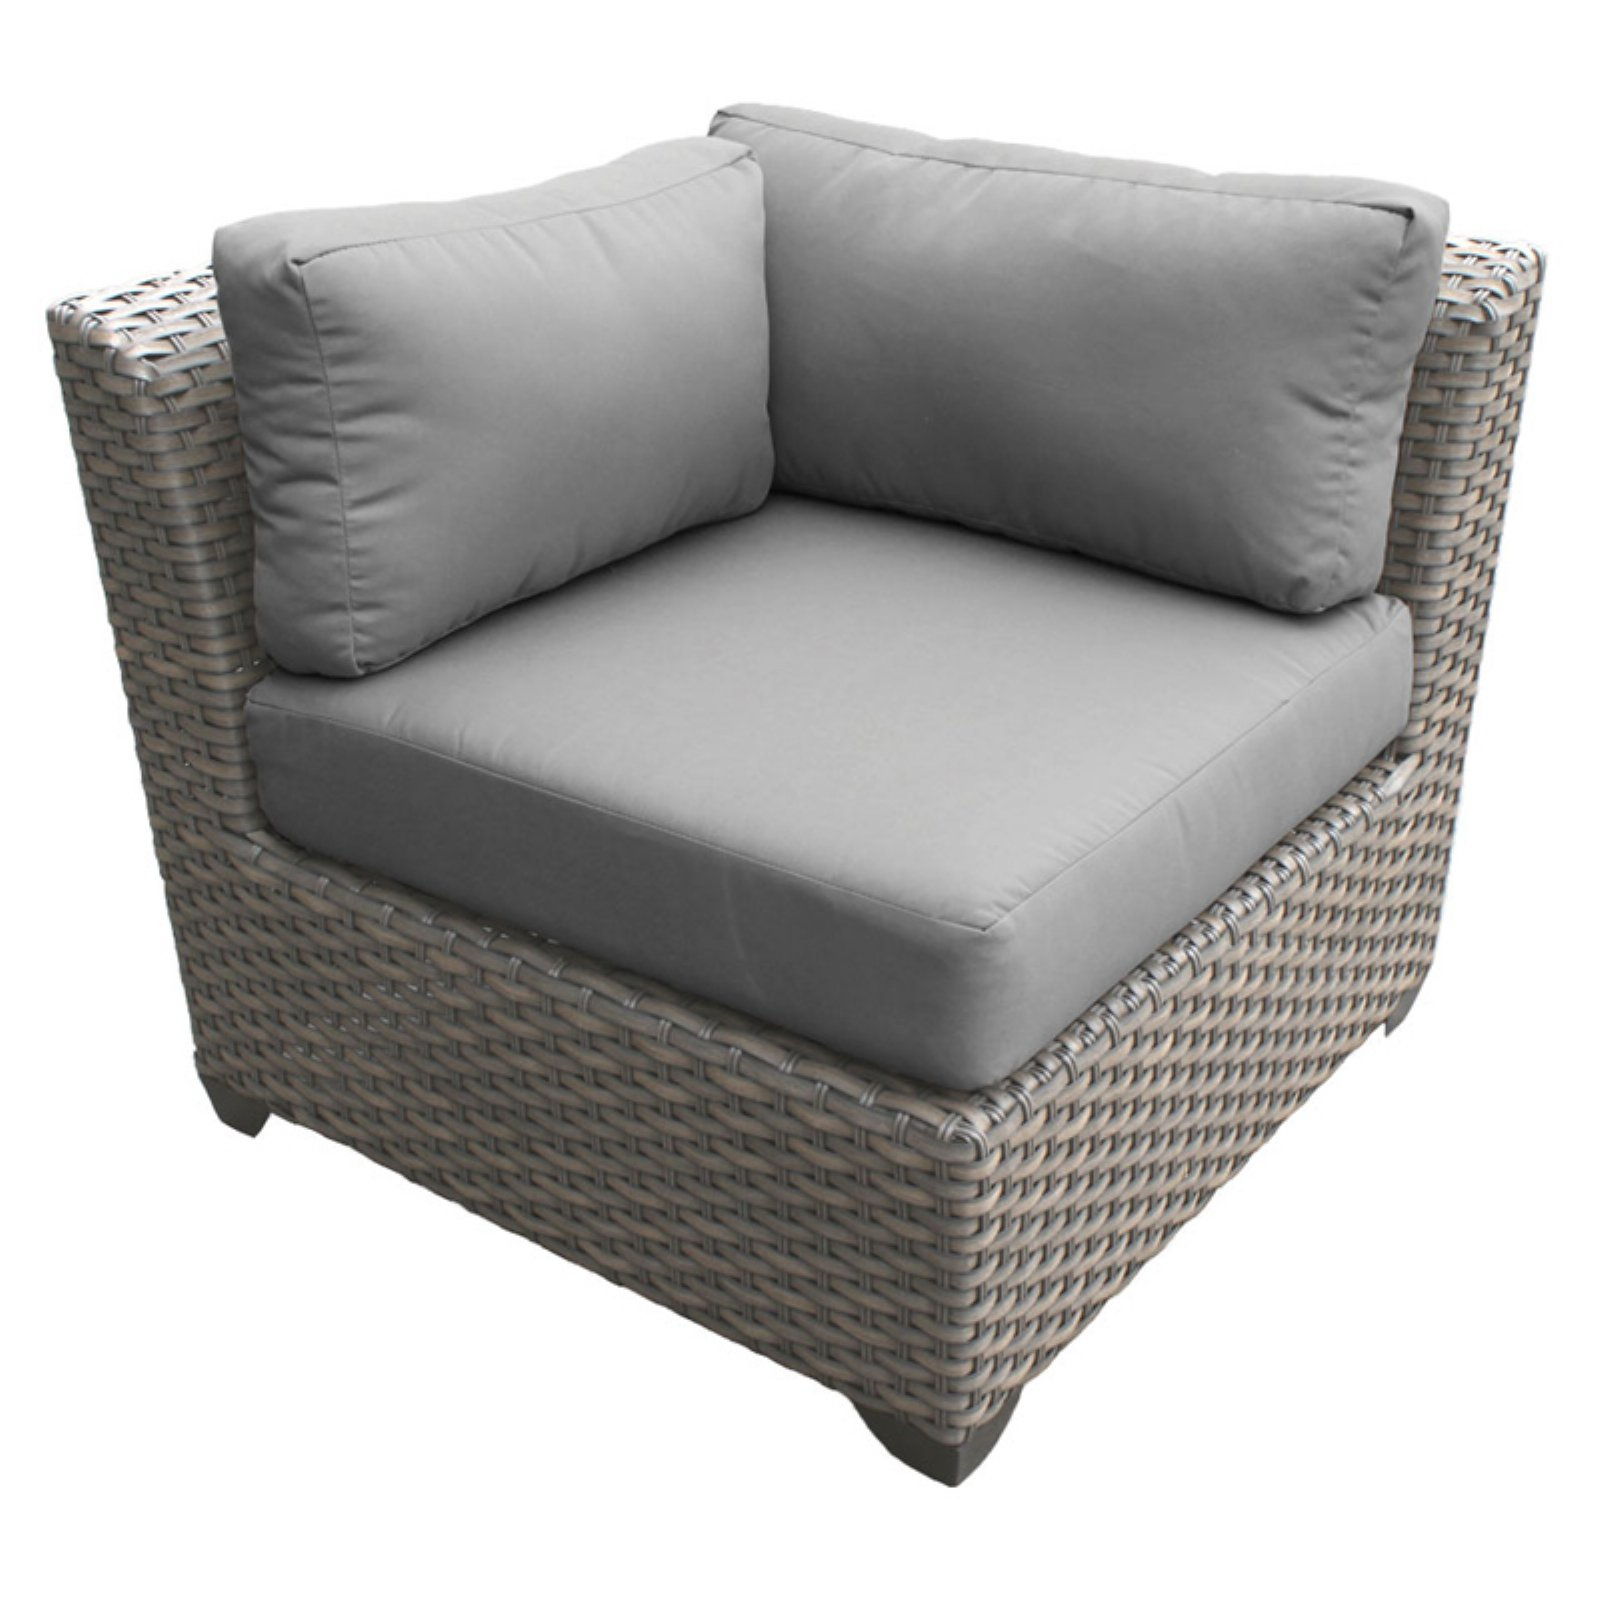 TK Classics Florence Outdoor Corner Chair with 2 Sets of Cushion Covers